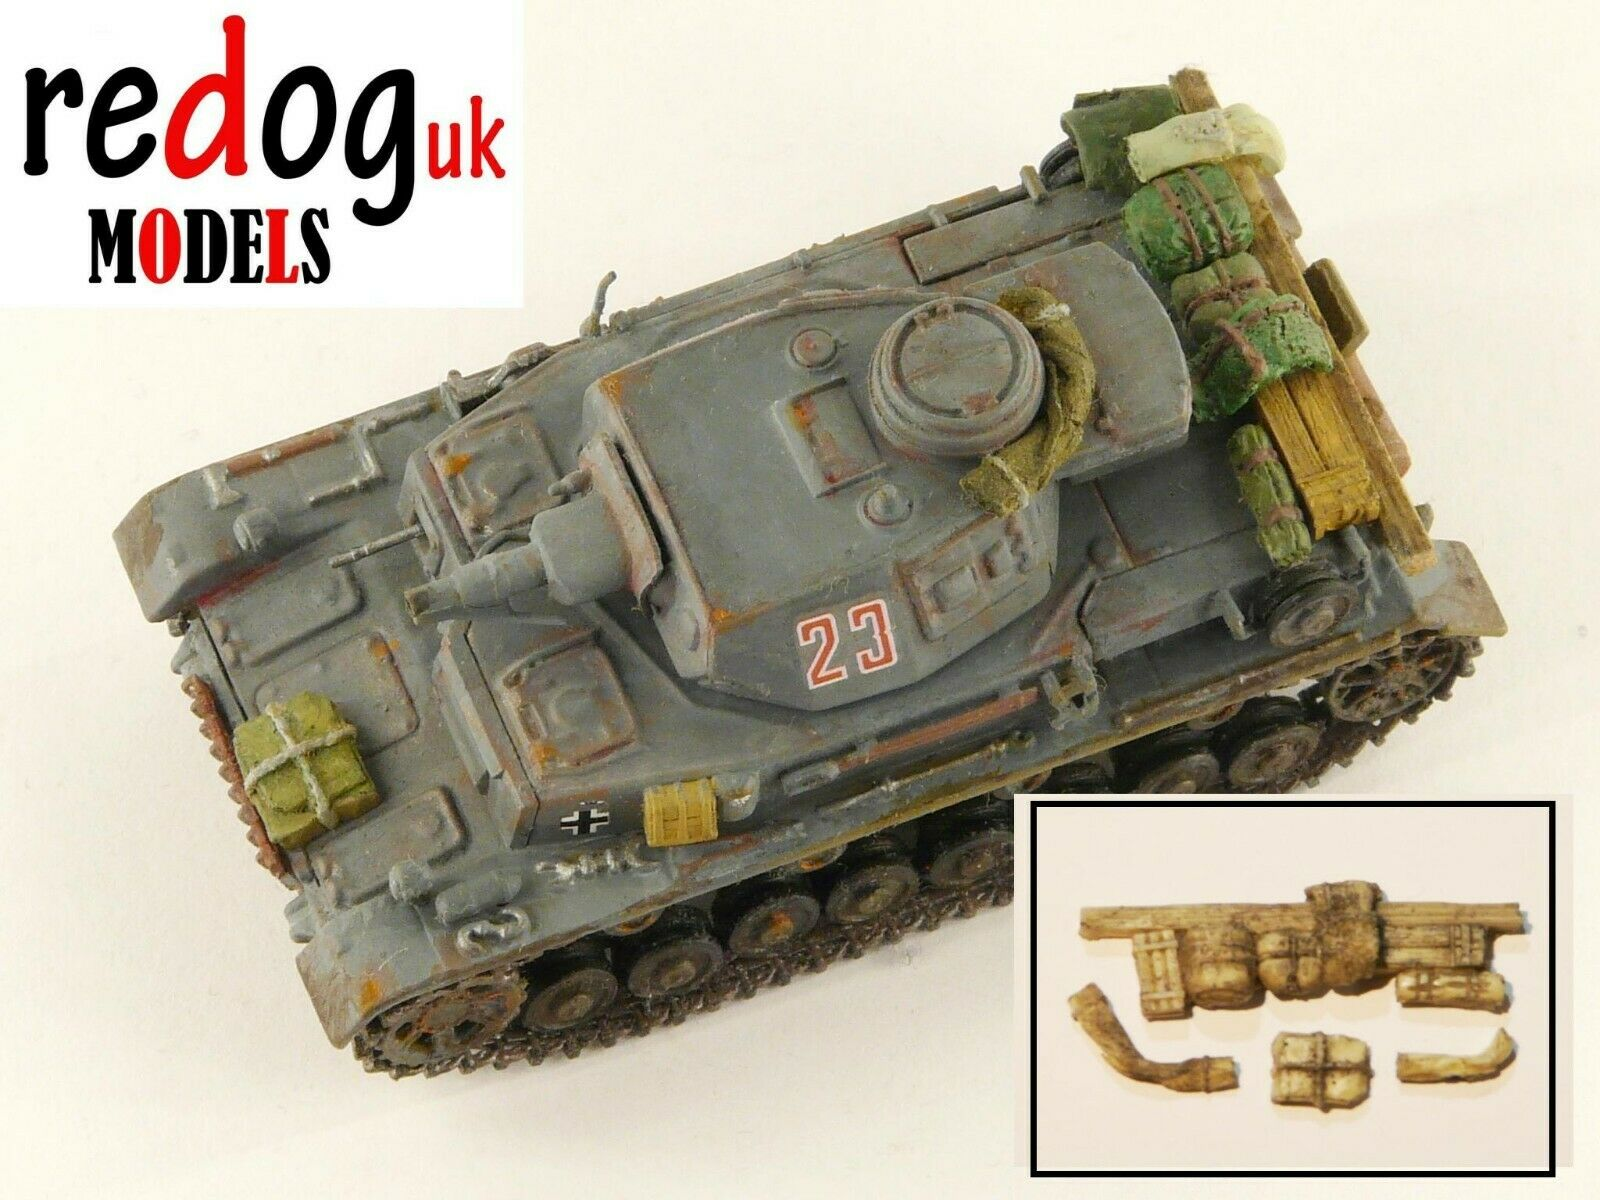 1/72 Panzer German Pz.Kpfw. IV Ausf. D Tank Military Scale Model Stowage Kit - redoguk